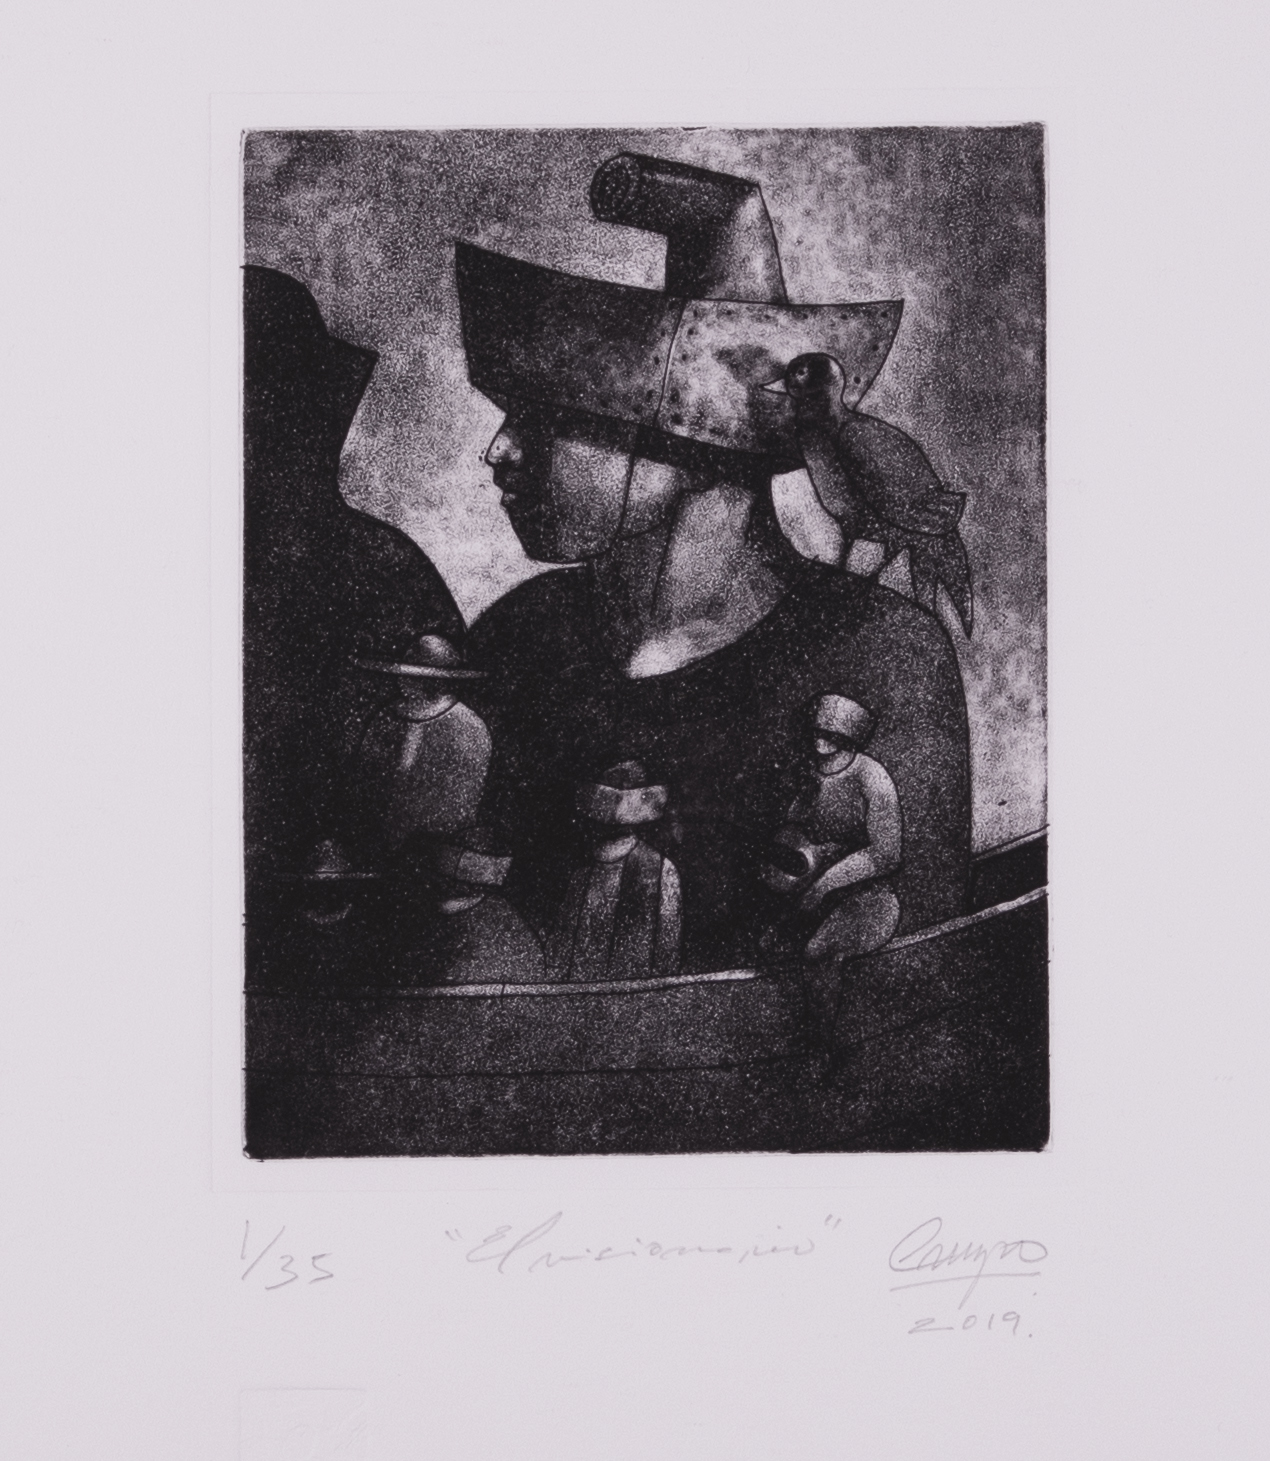 Taller de Estampa Bastidor Solitario,  San Jose, Costa Rica  The Visionary , 2019, Mezzotint and etching, 30 x 22 inches, Courtesy of the artist